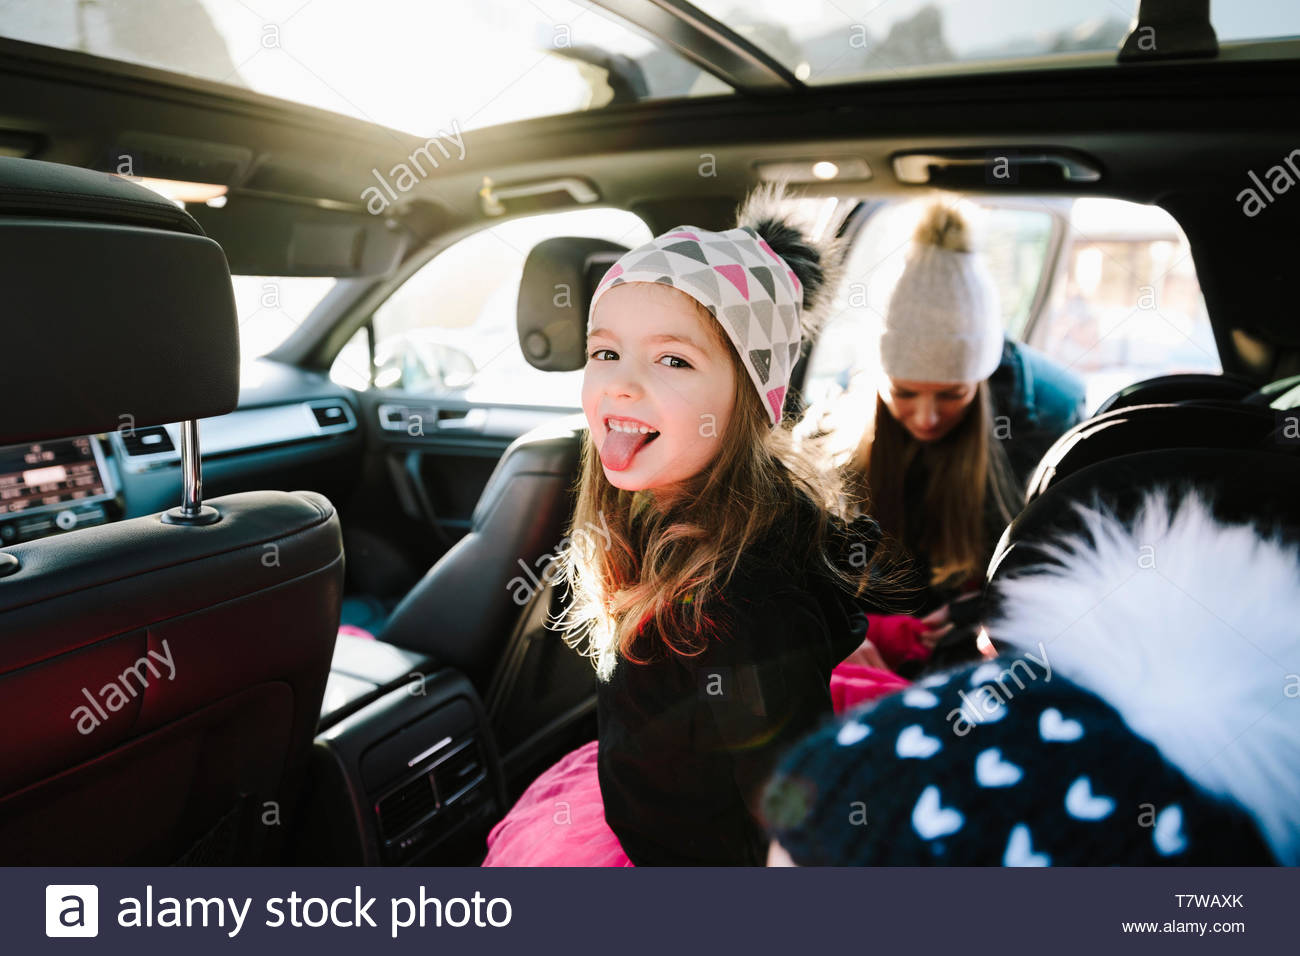 Portrait playful girl in car sticking out tongue - Stock Image